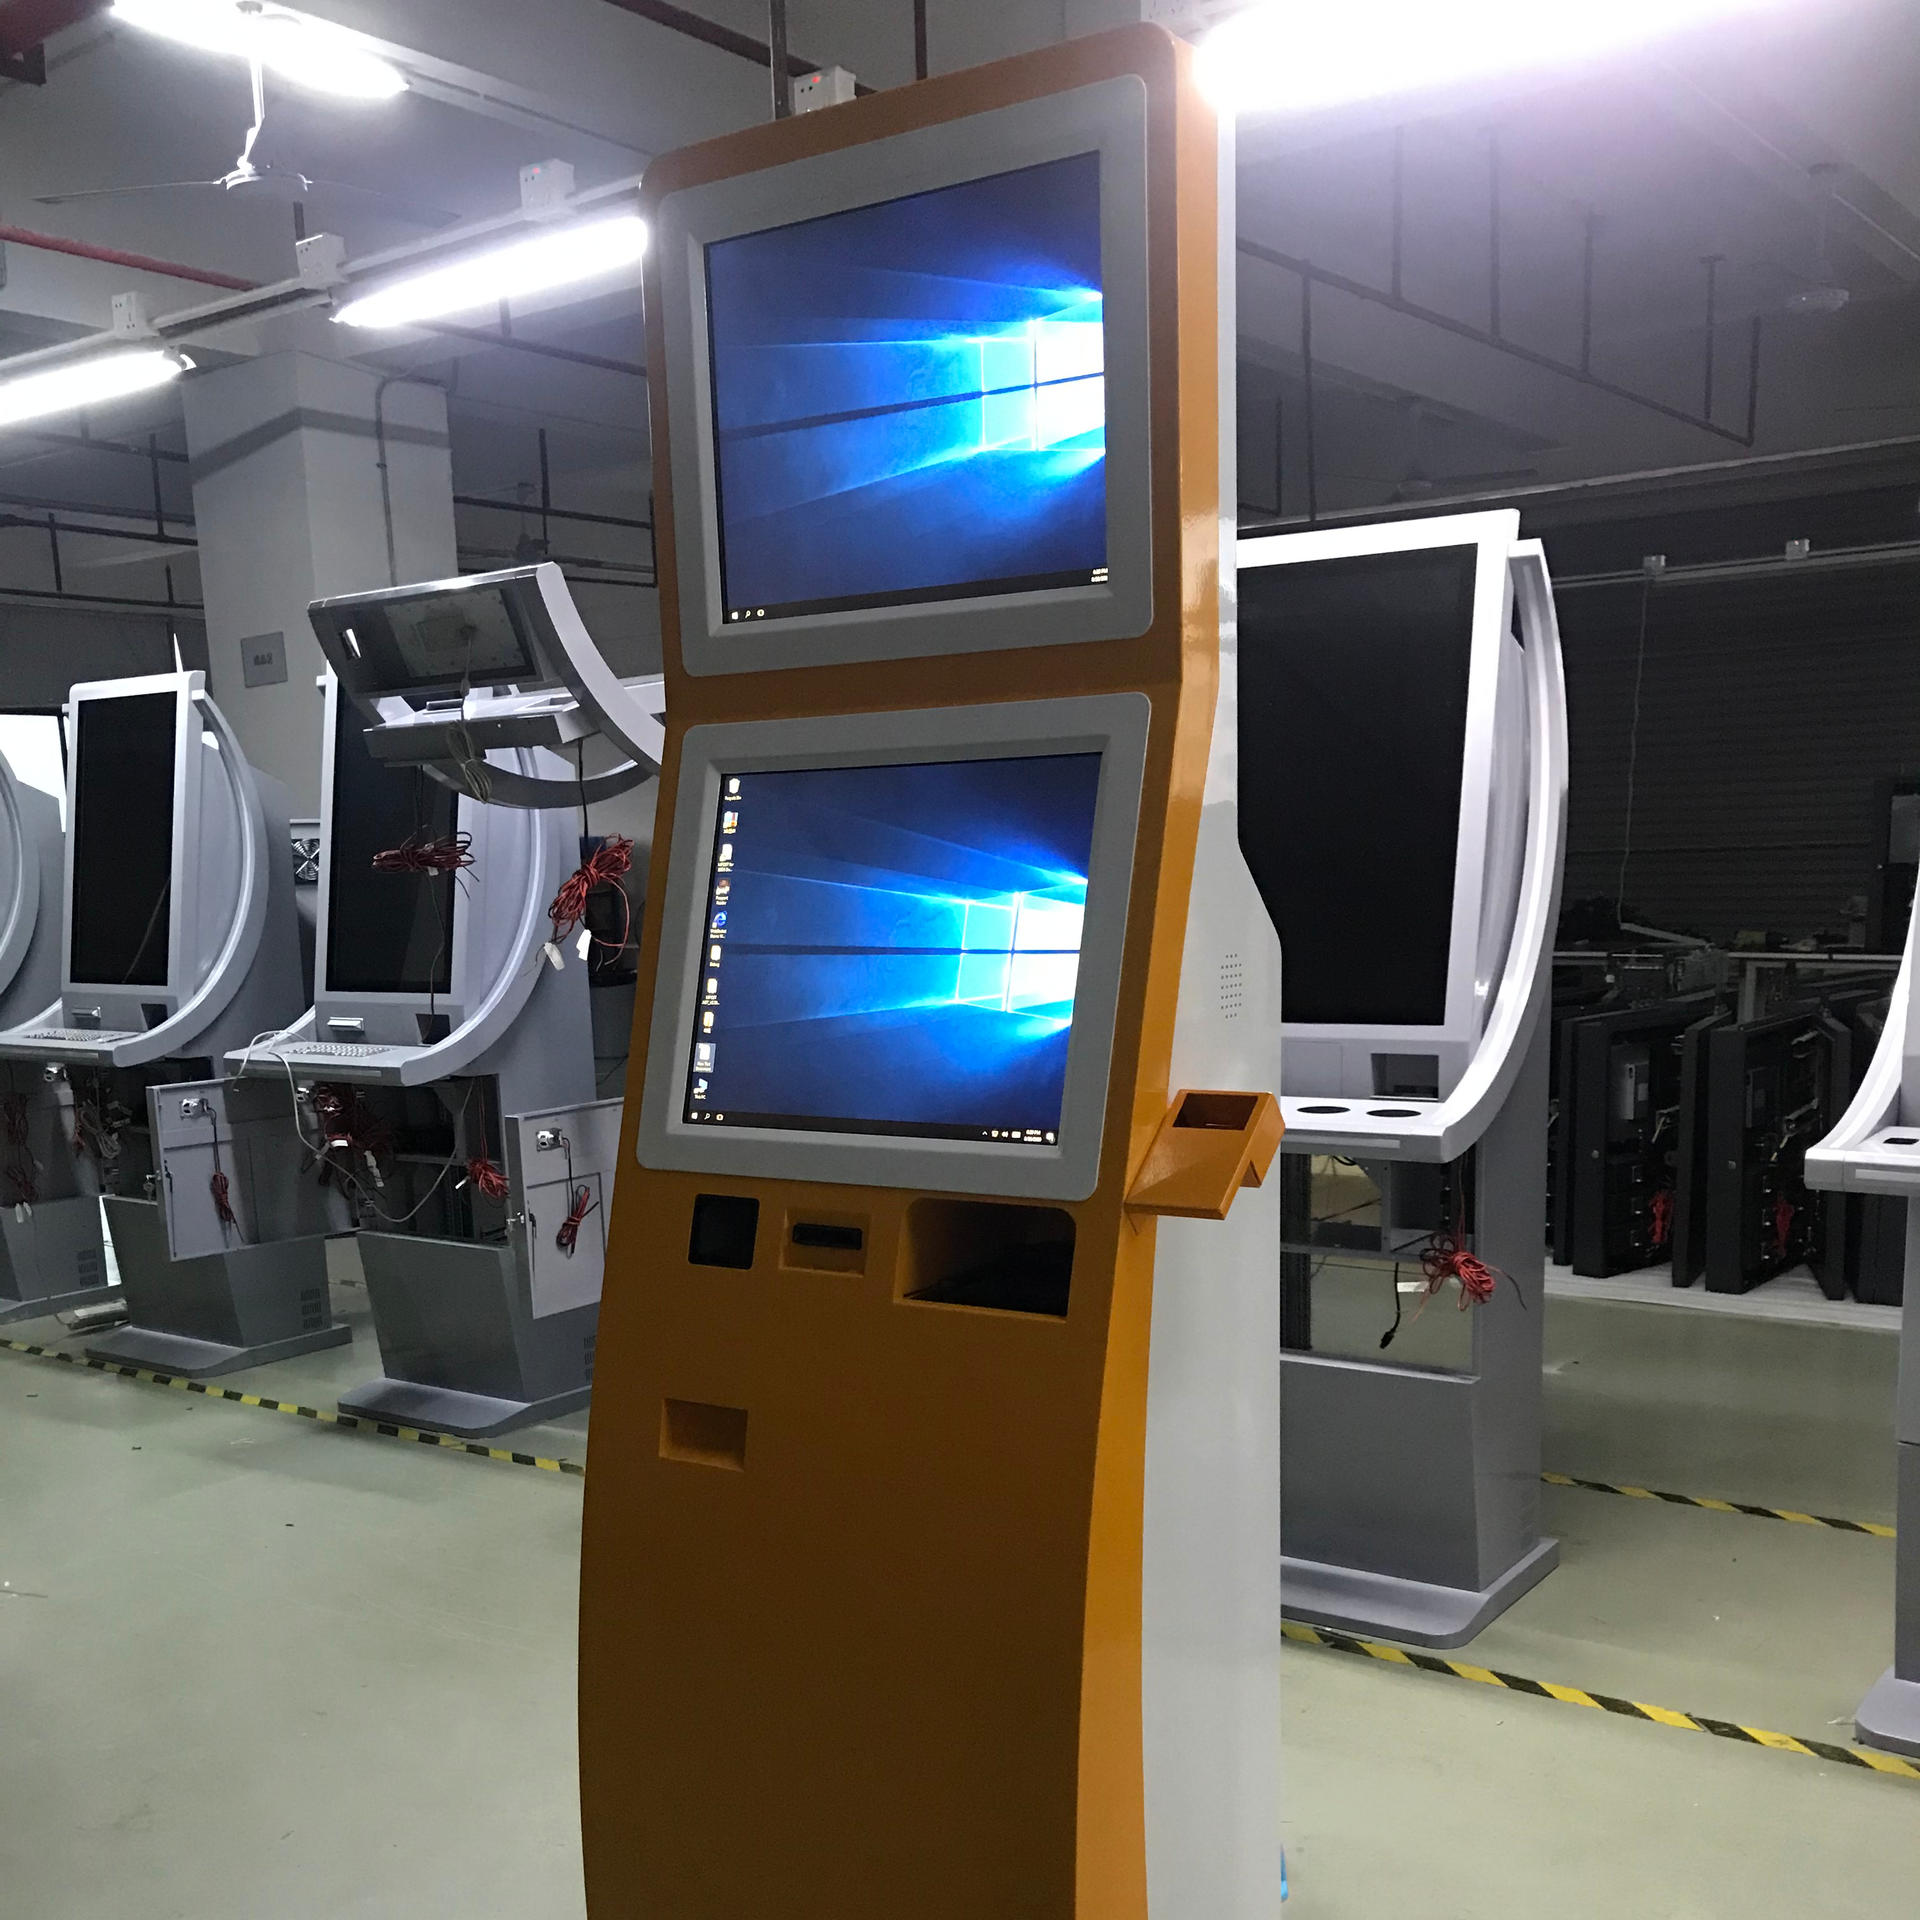 Automatic Touchscreen cashless smart self hotel check in kiosk with POS system